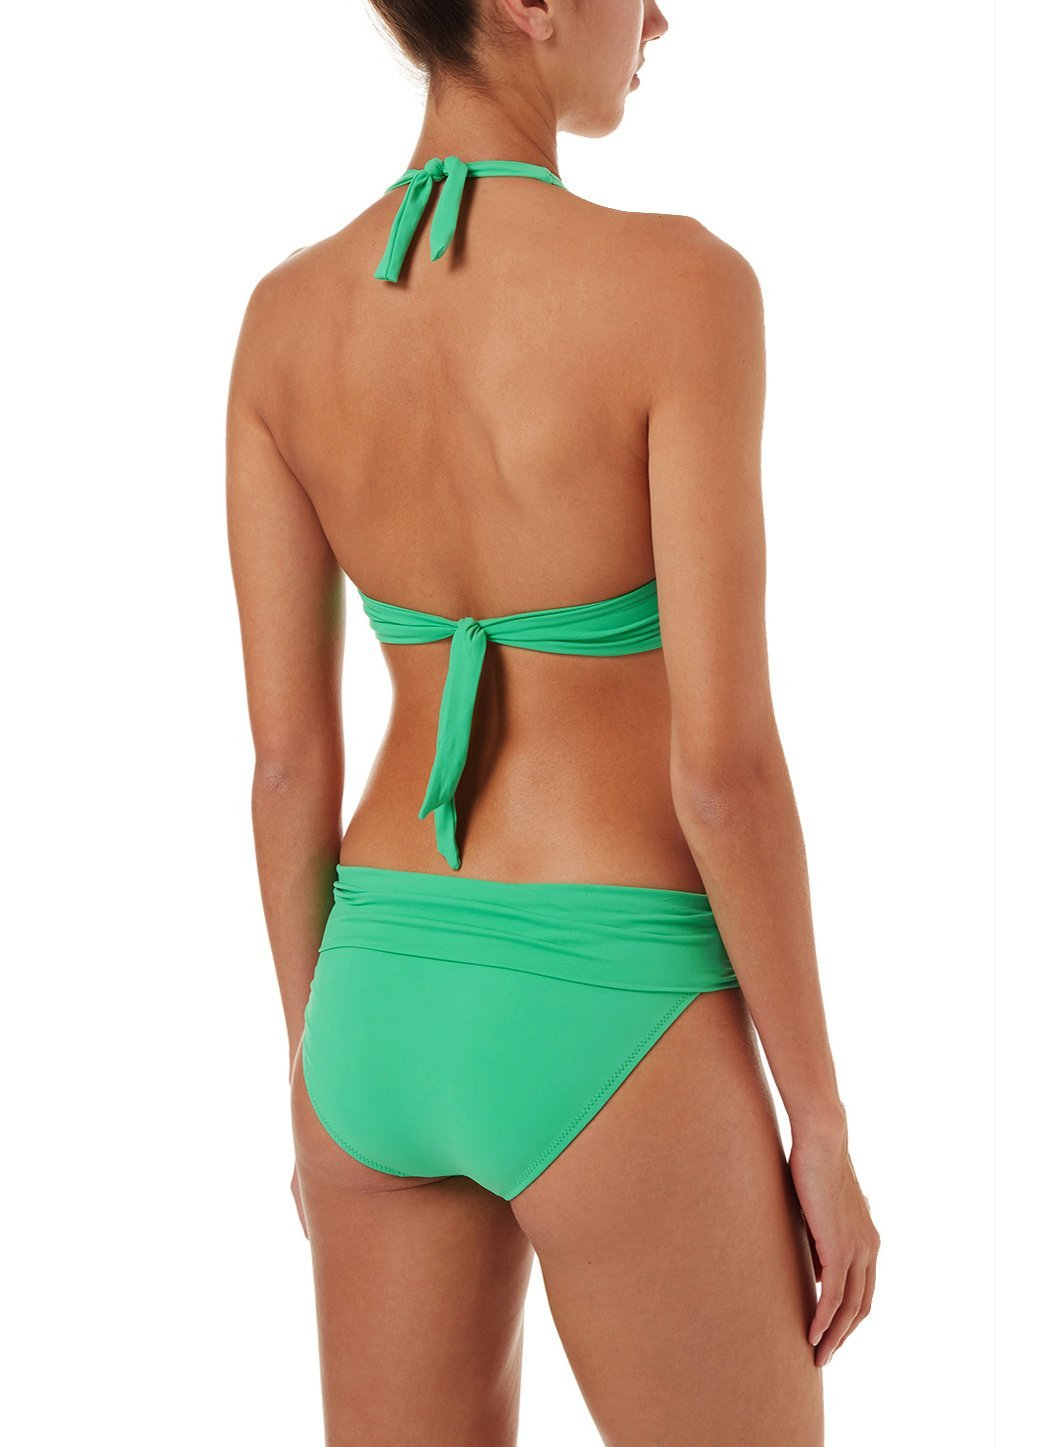 brussels green halterneck ring supportive bikini 2019 B